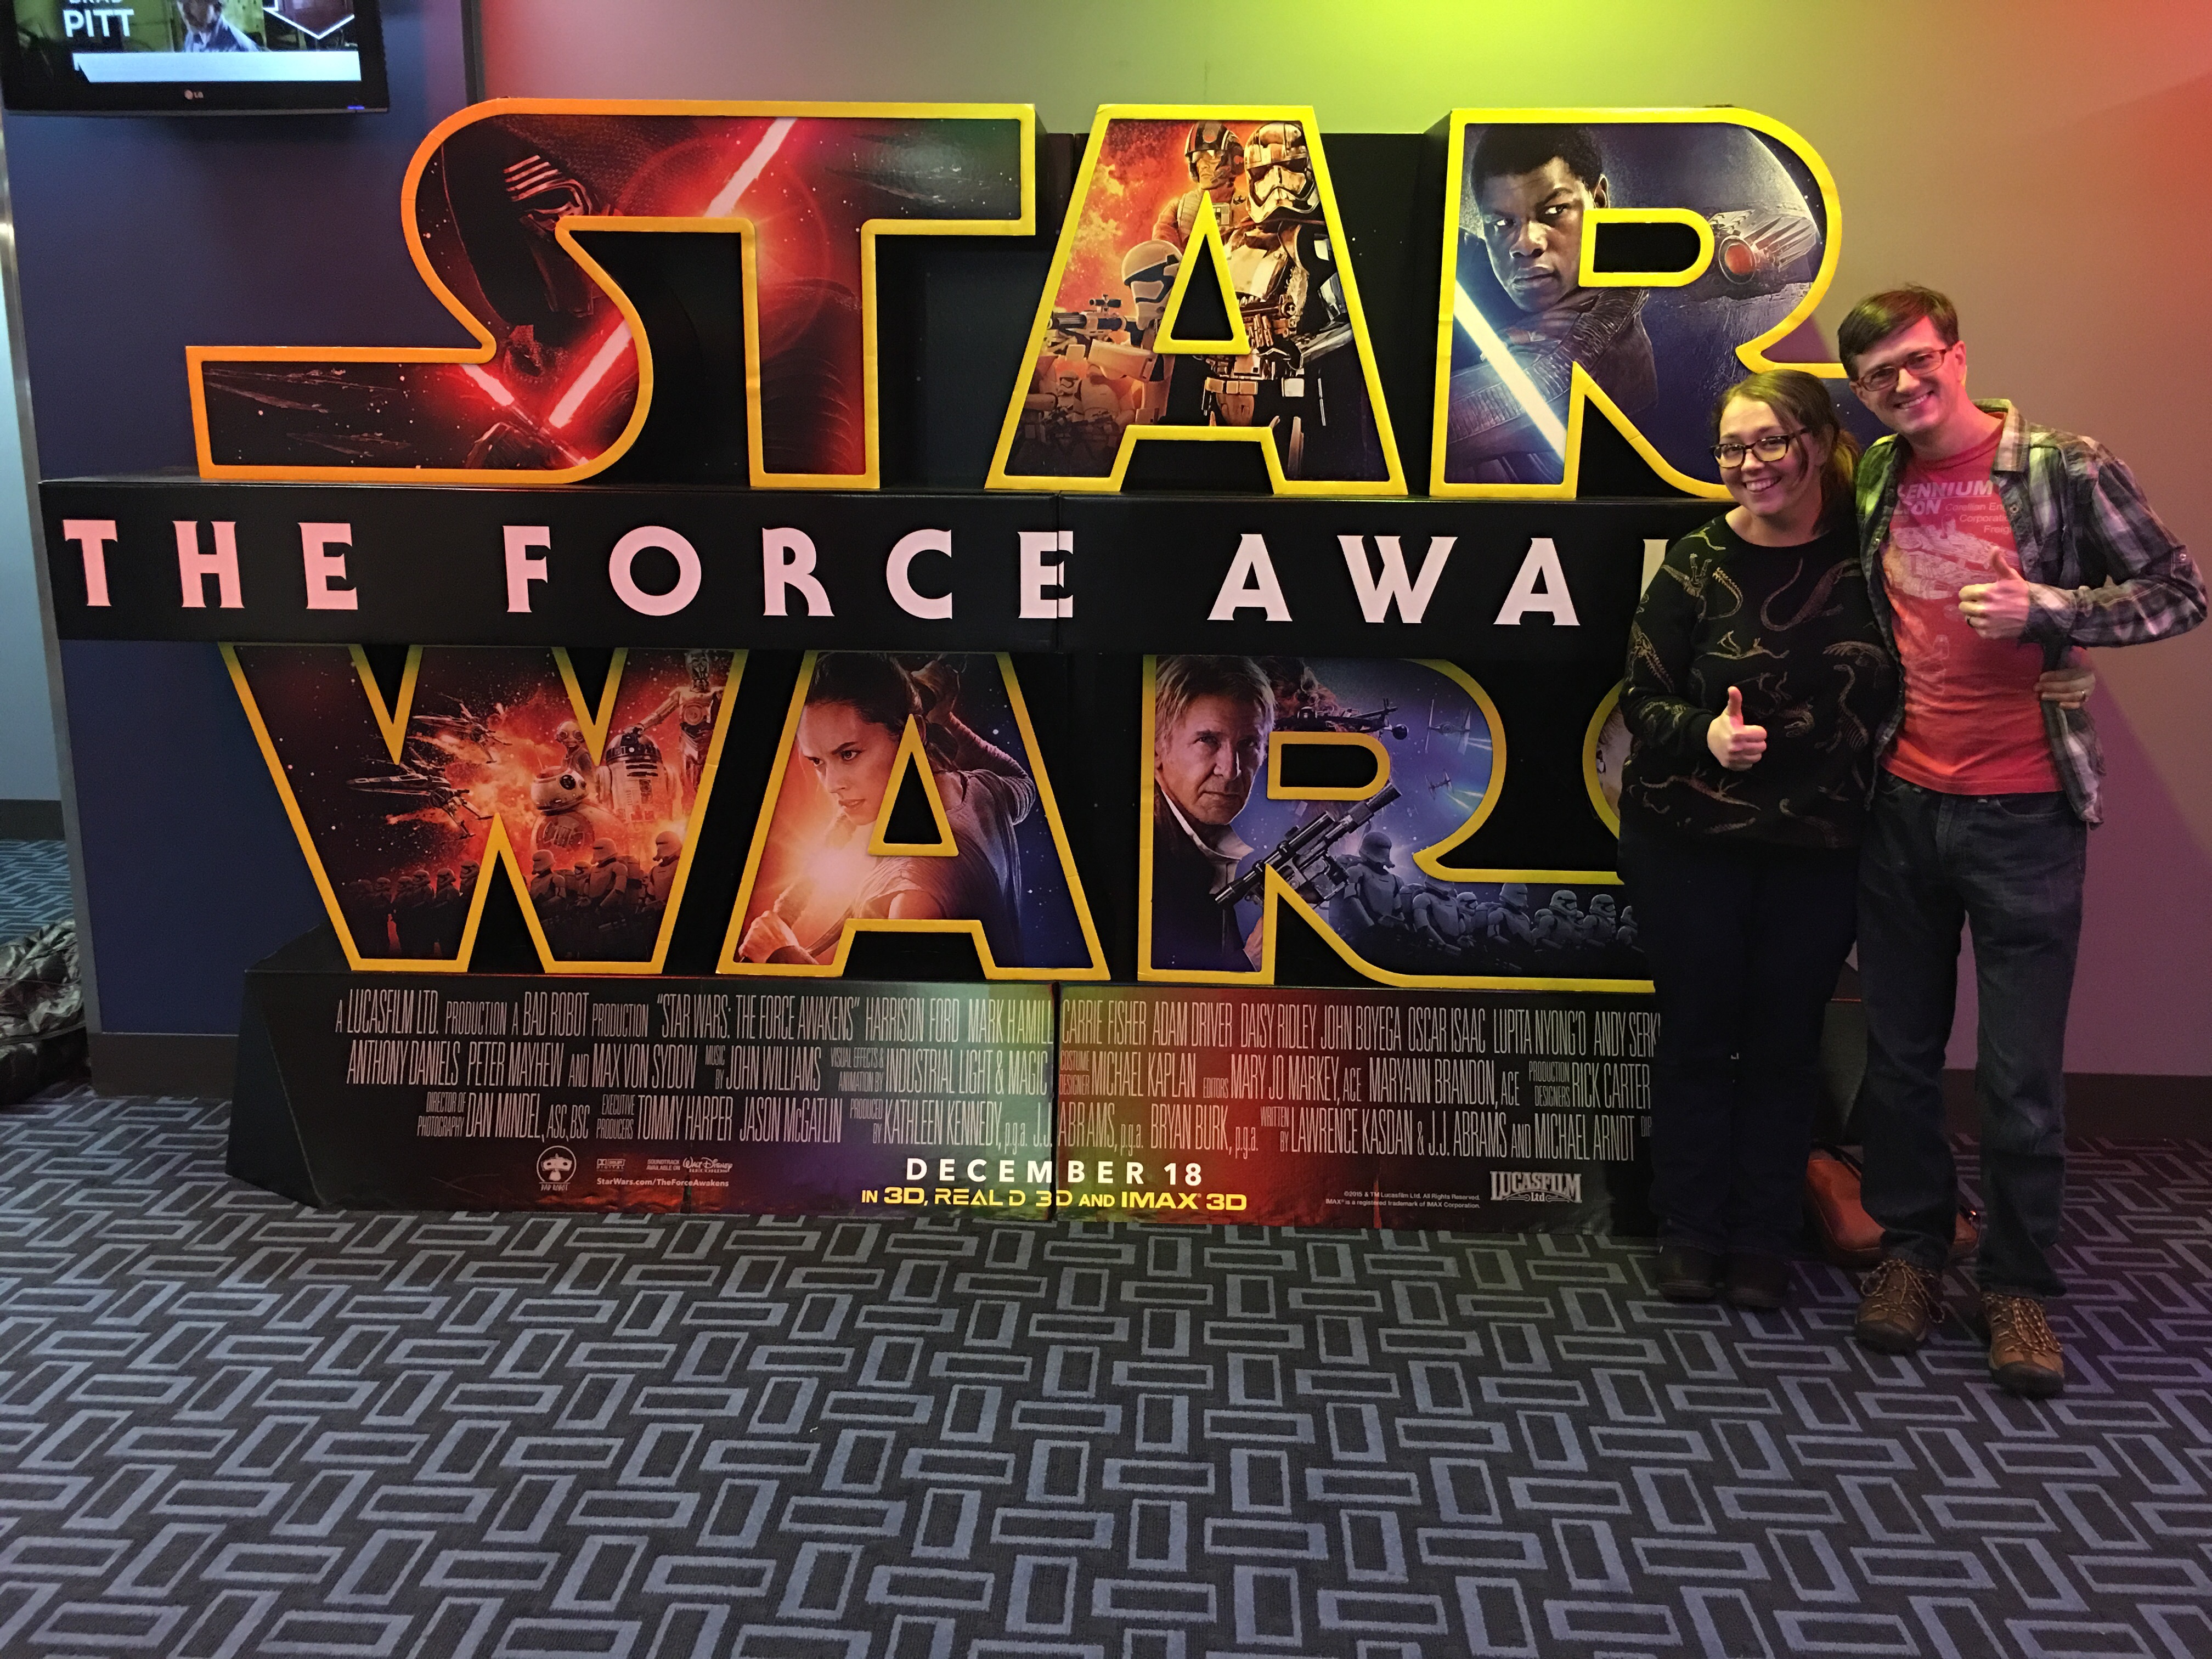 Andrle and Nick stand to the right of a large Star Wars: The Force Awakens poster